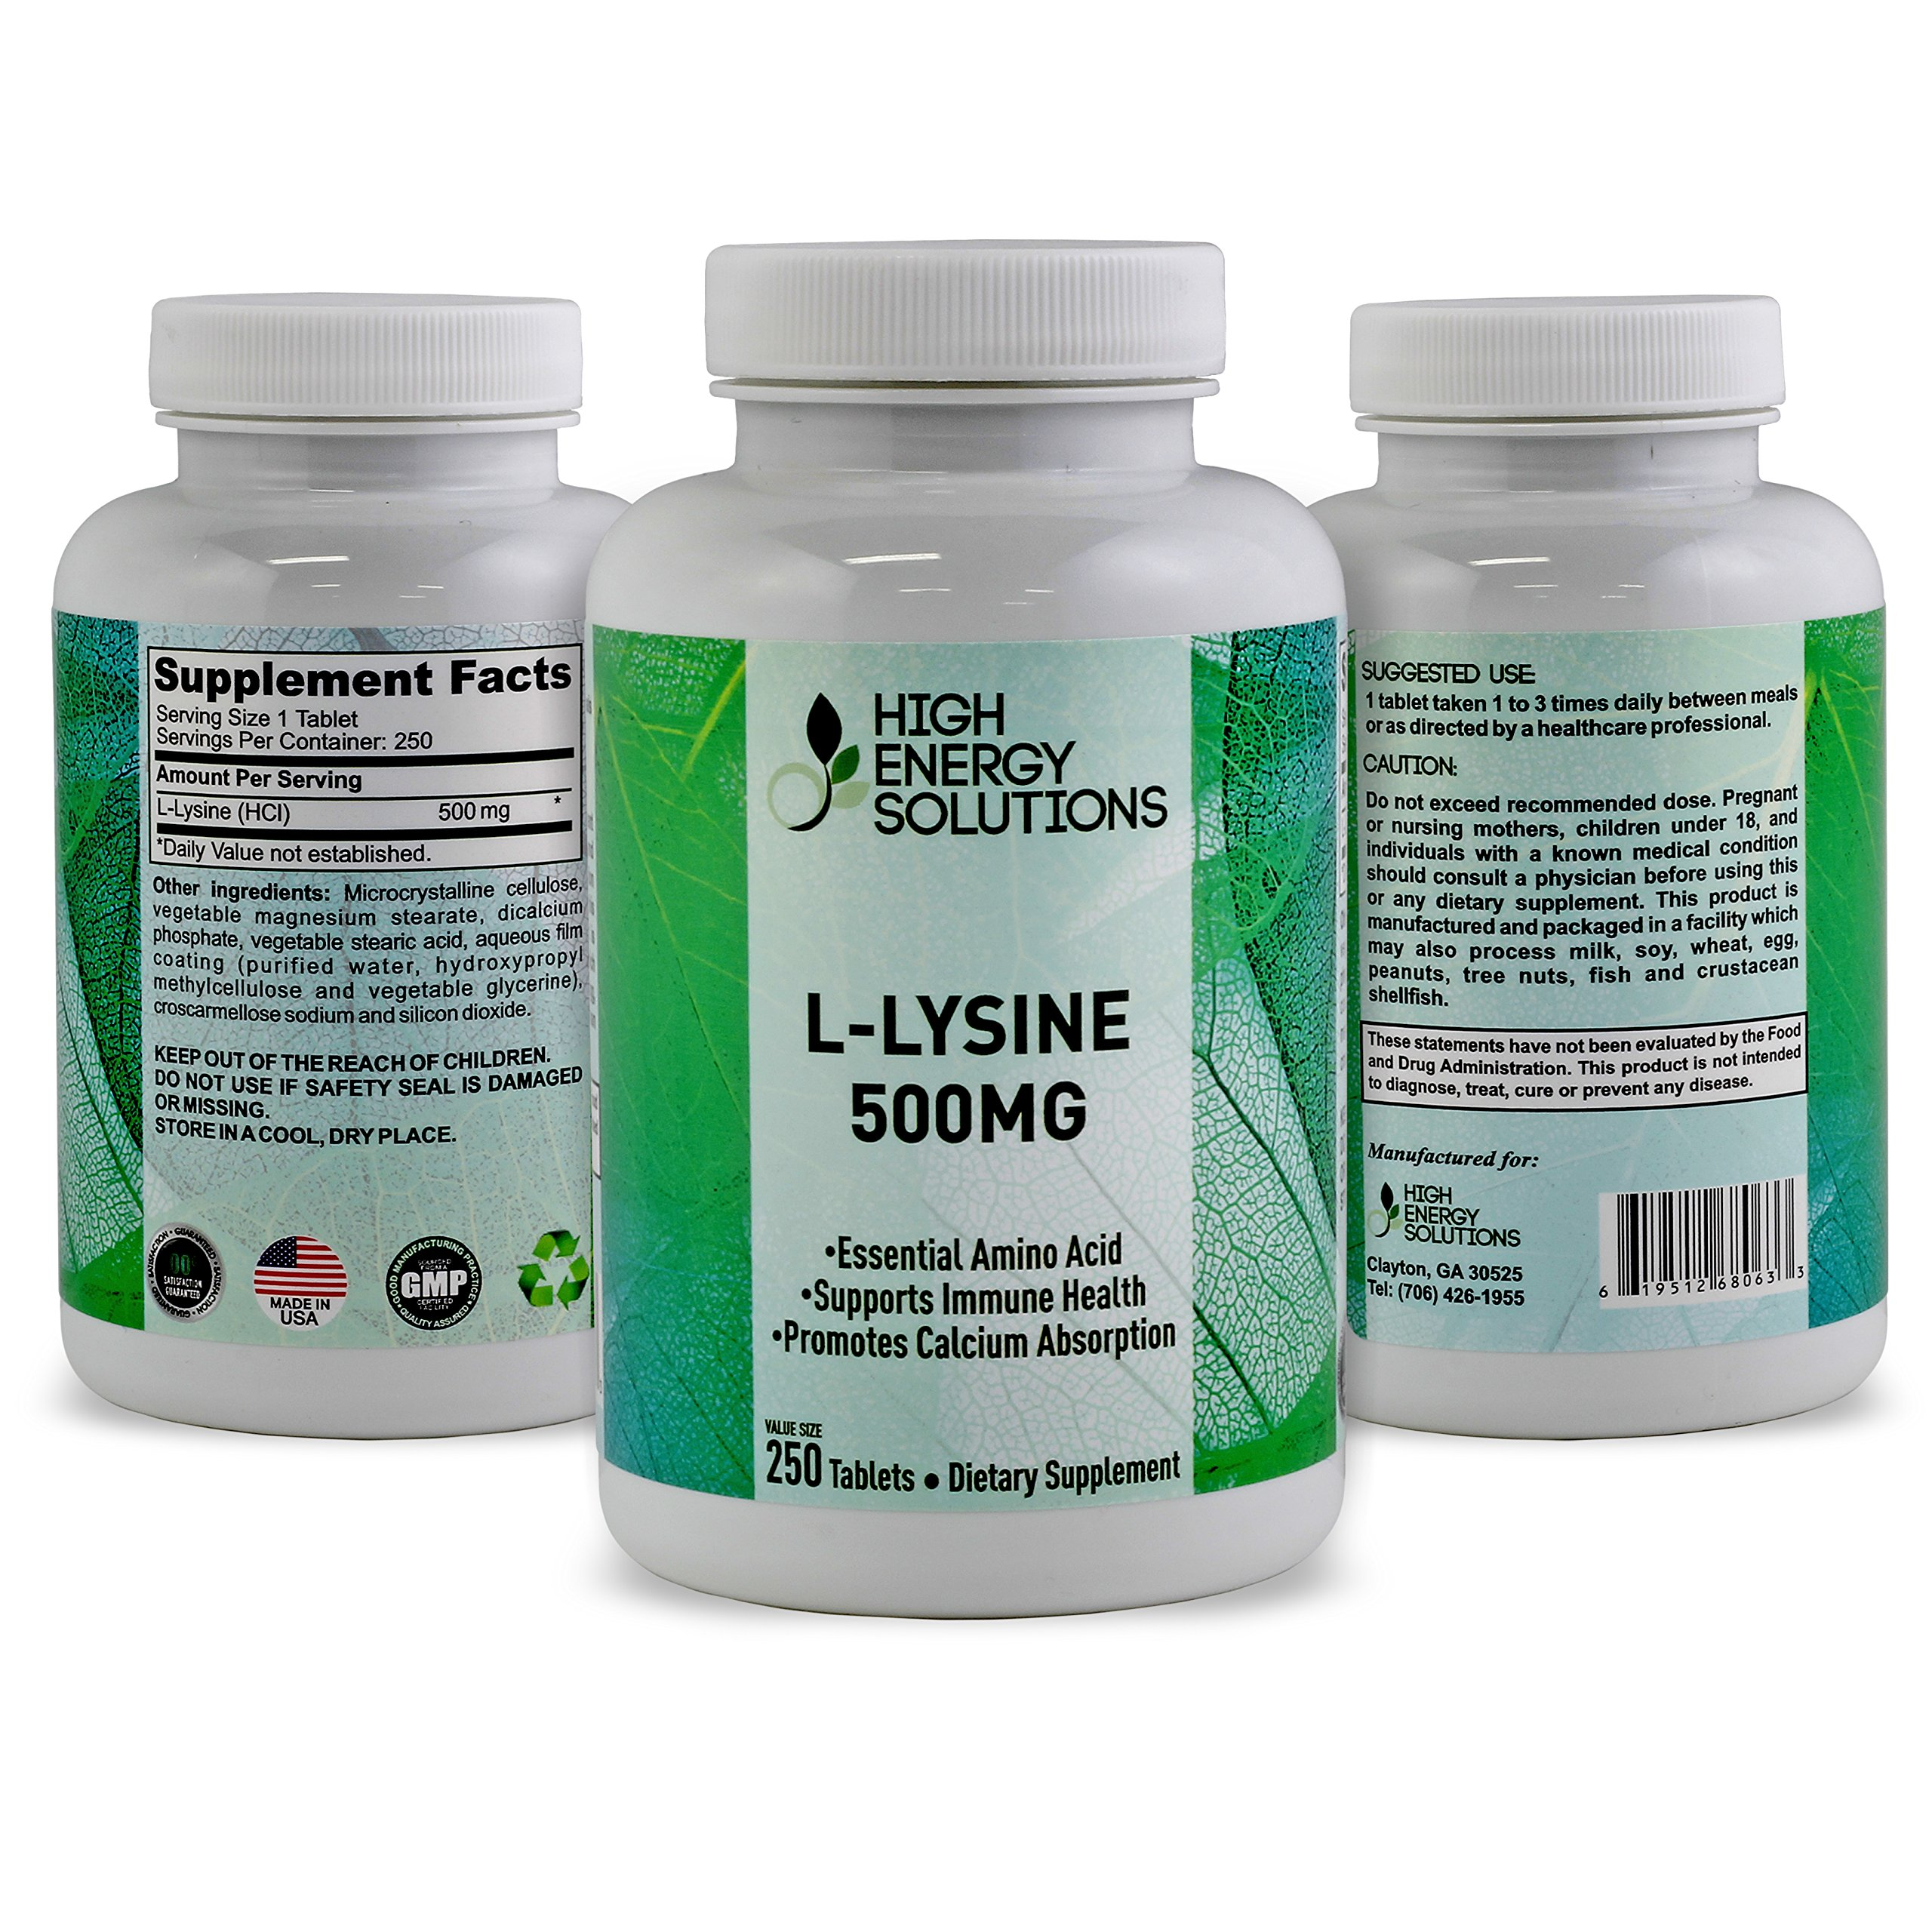 HIGH ENERGY SOLUTIONS - L-LYSINE - Value Sized 250 Tablet Bottle 100% Pure - Potent 500MG Essential Amino Acid Tablets For Amazing Health Benefits - Ultimate Bio-Availability And Absorption GMP - USA